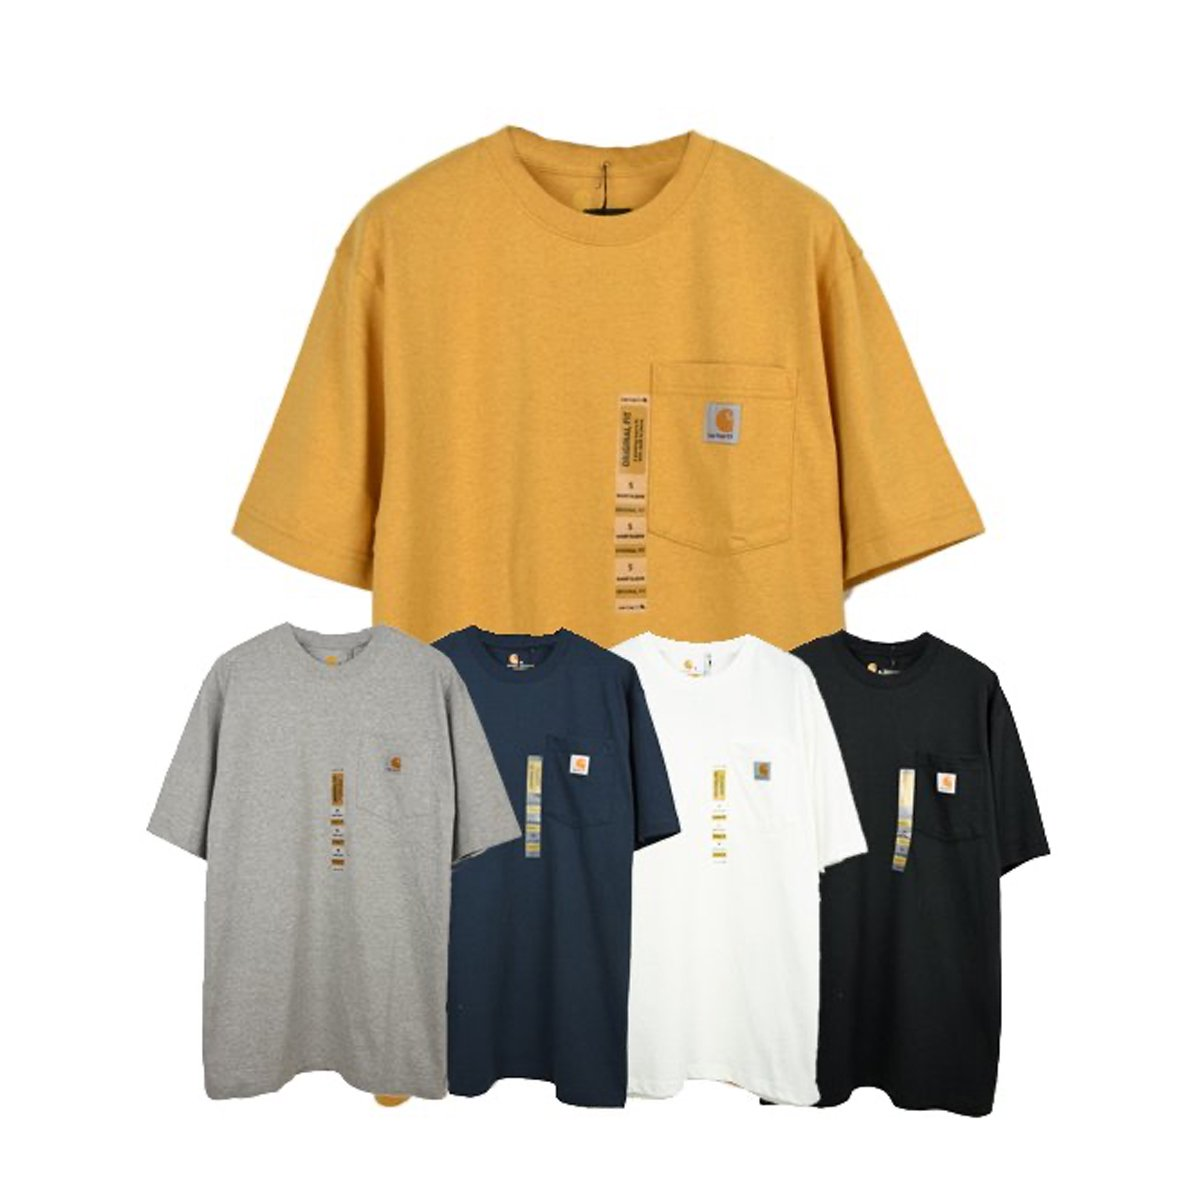 【CARHARTT】POCKET TEE<img class='new_mark_img2' src='//img.shop-pro.jp/img/new/icons8.gif' style='border:none;display:inline;margin:0px;padding:0px;width:auto;' />